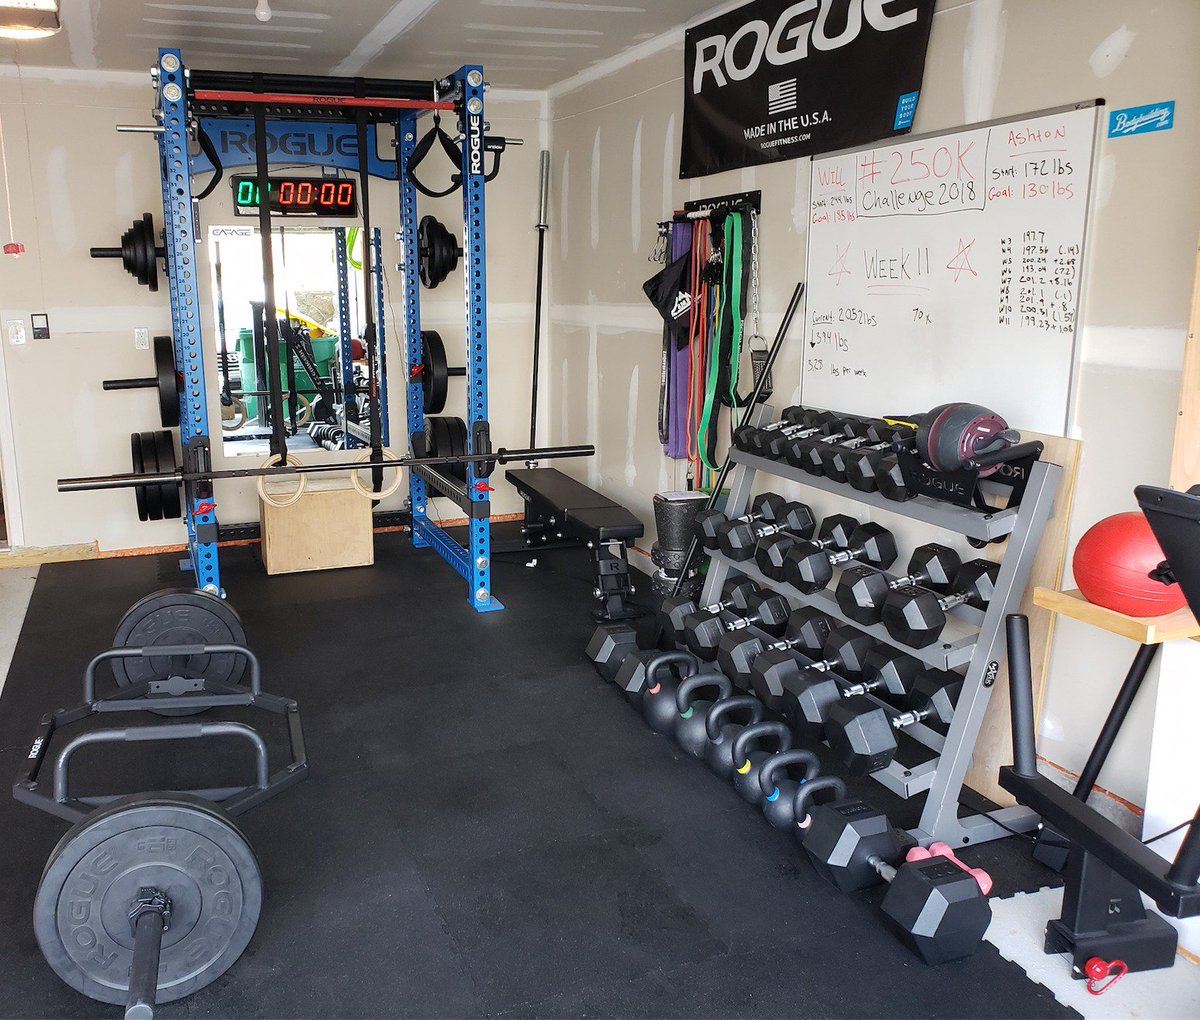 Rogue Fitness on Twitter Garage gym courtesy